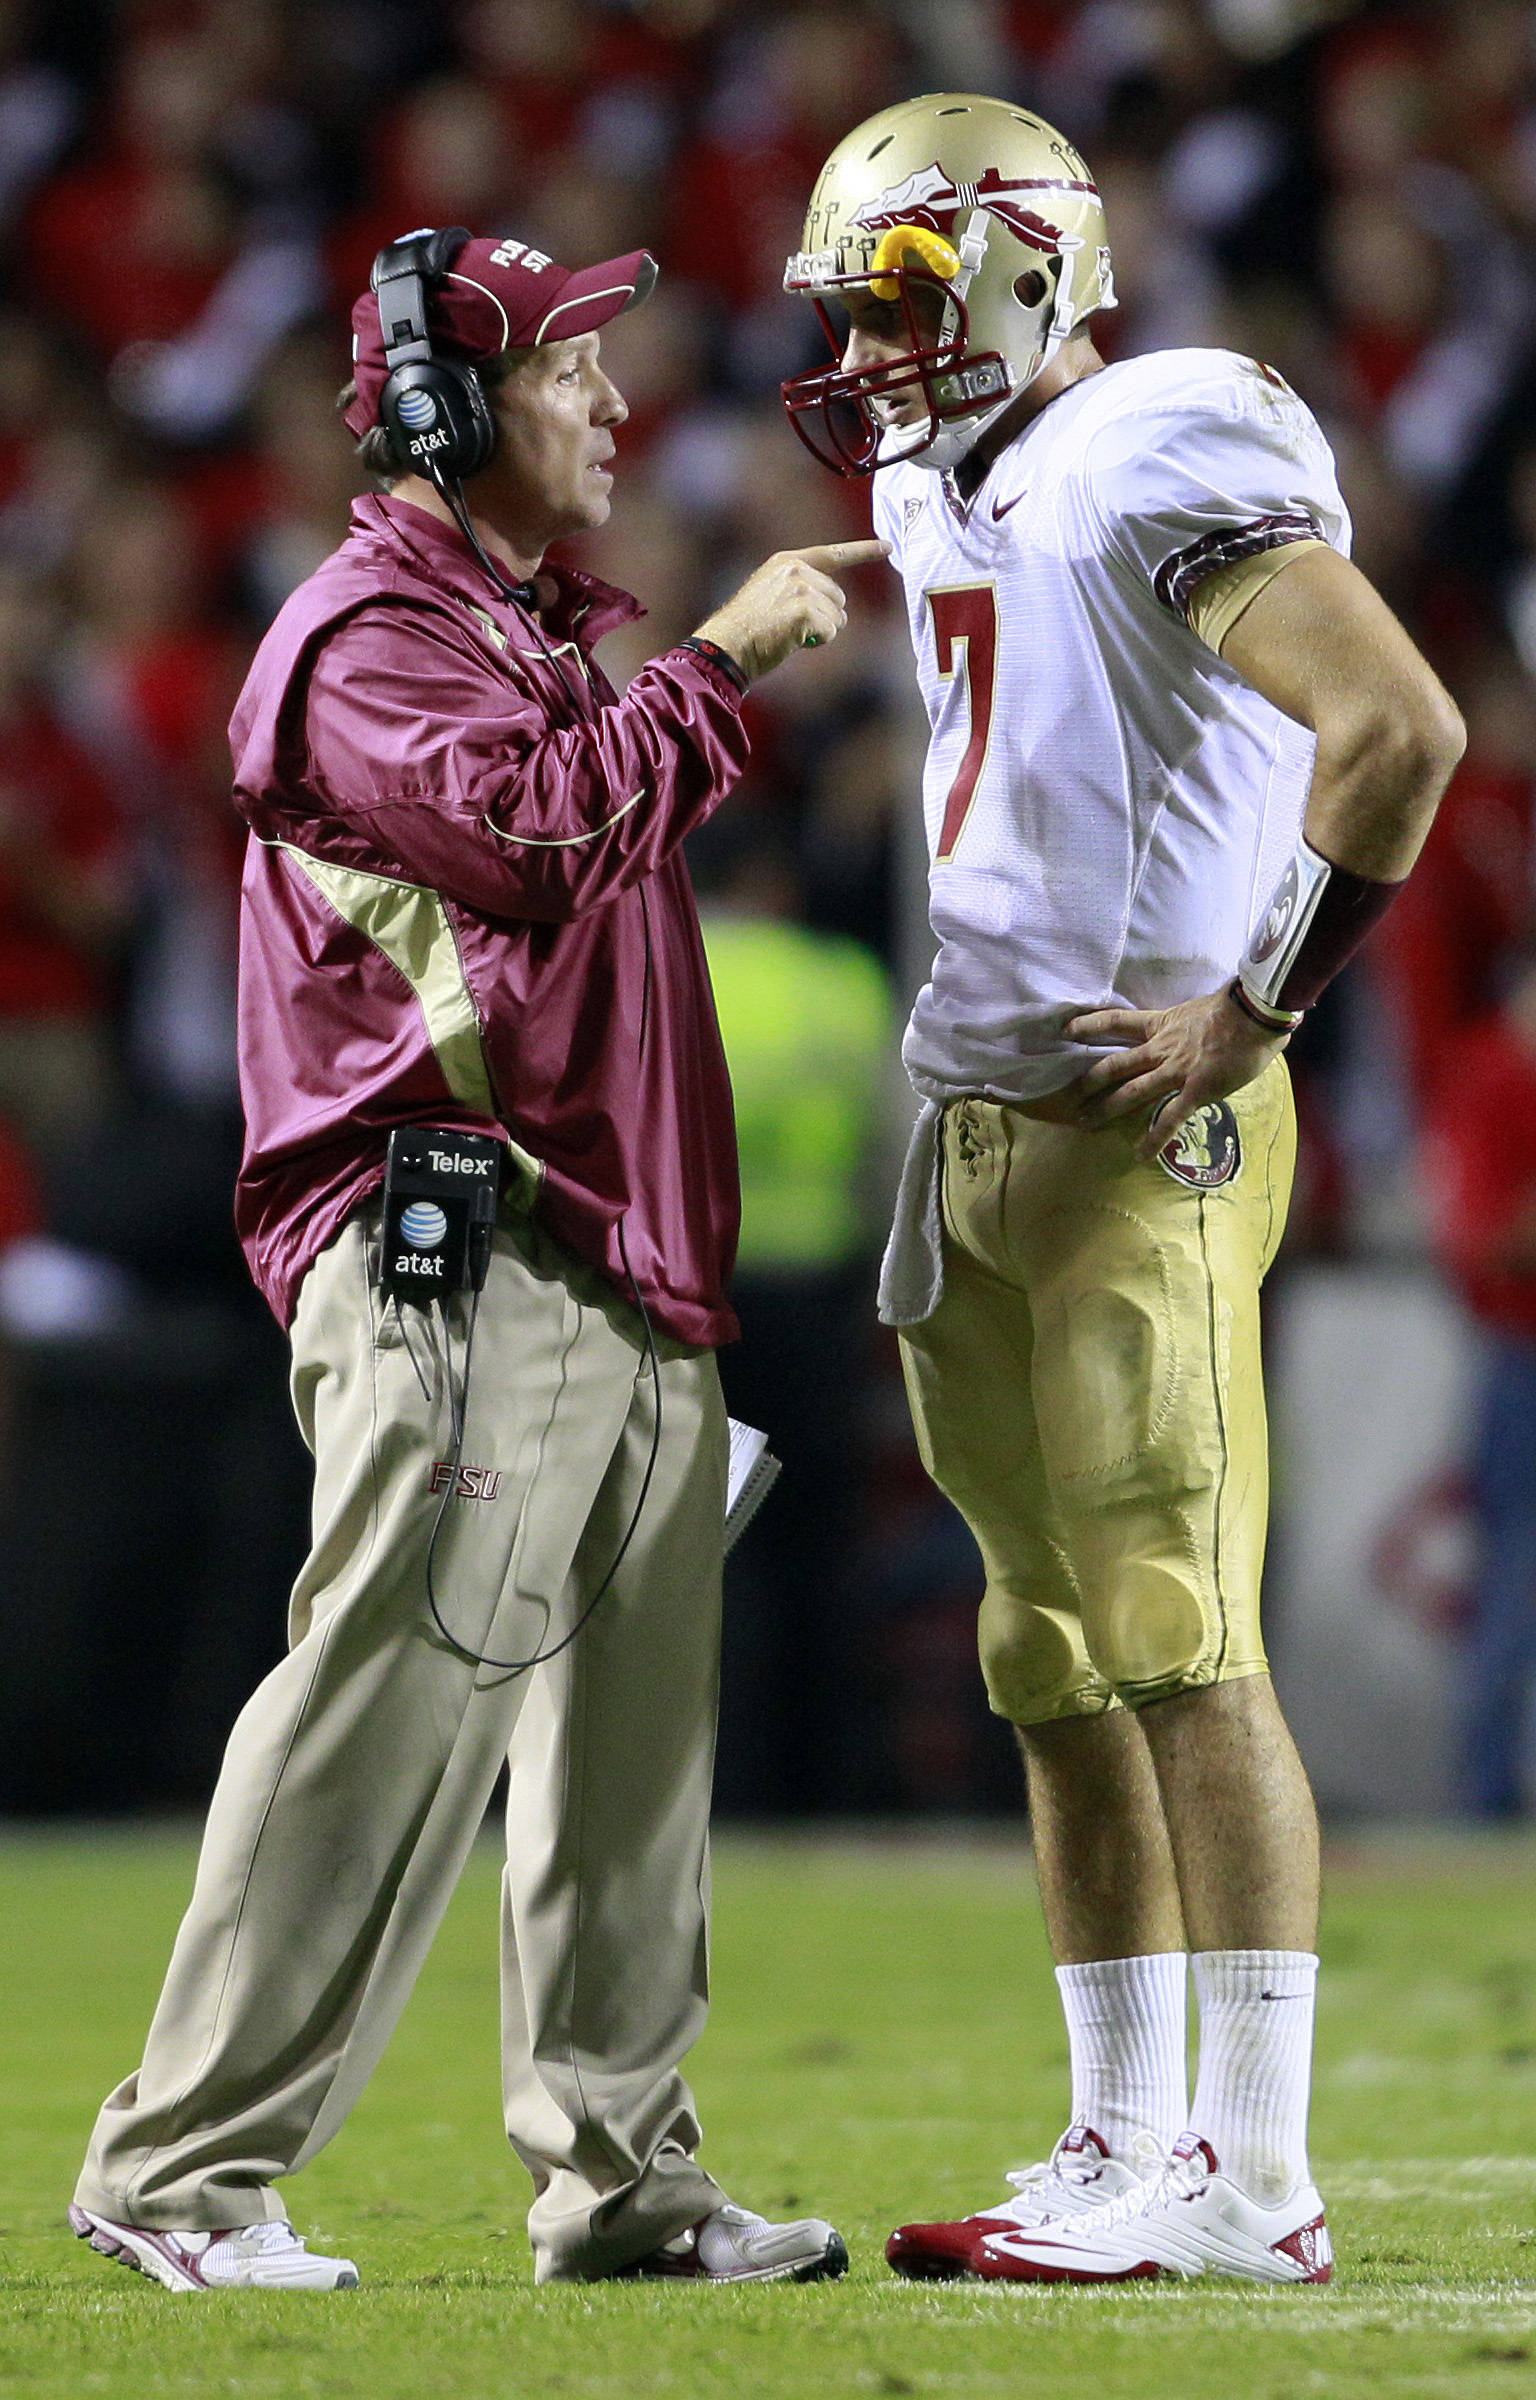 Florida State coach Jimbo Fisher speaks with quarterback Christian Ponder (7) during the first half of an NCAA college football game against North Carolina State in Raleigh, N.C., Thursday, Oct. 28, 2010. (AP Photo/Gerry Broome)